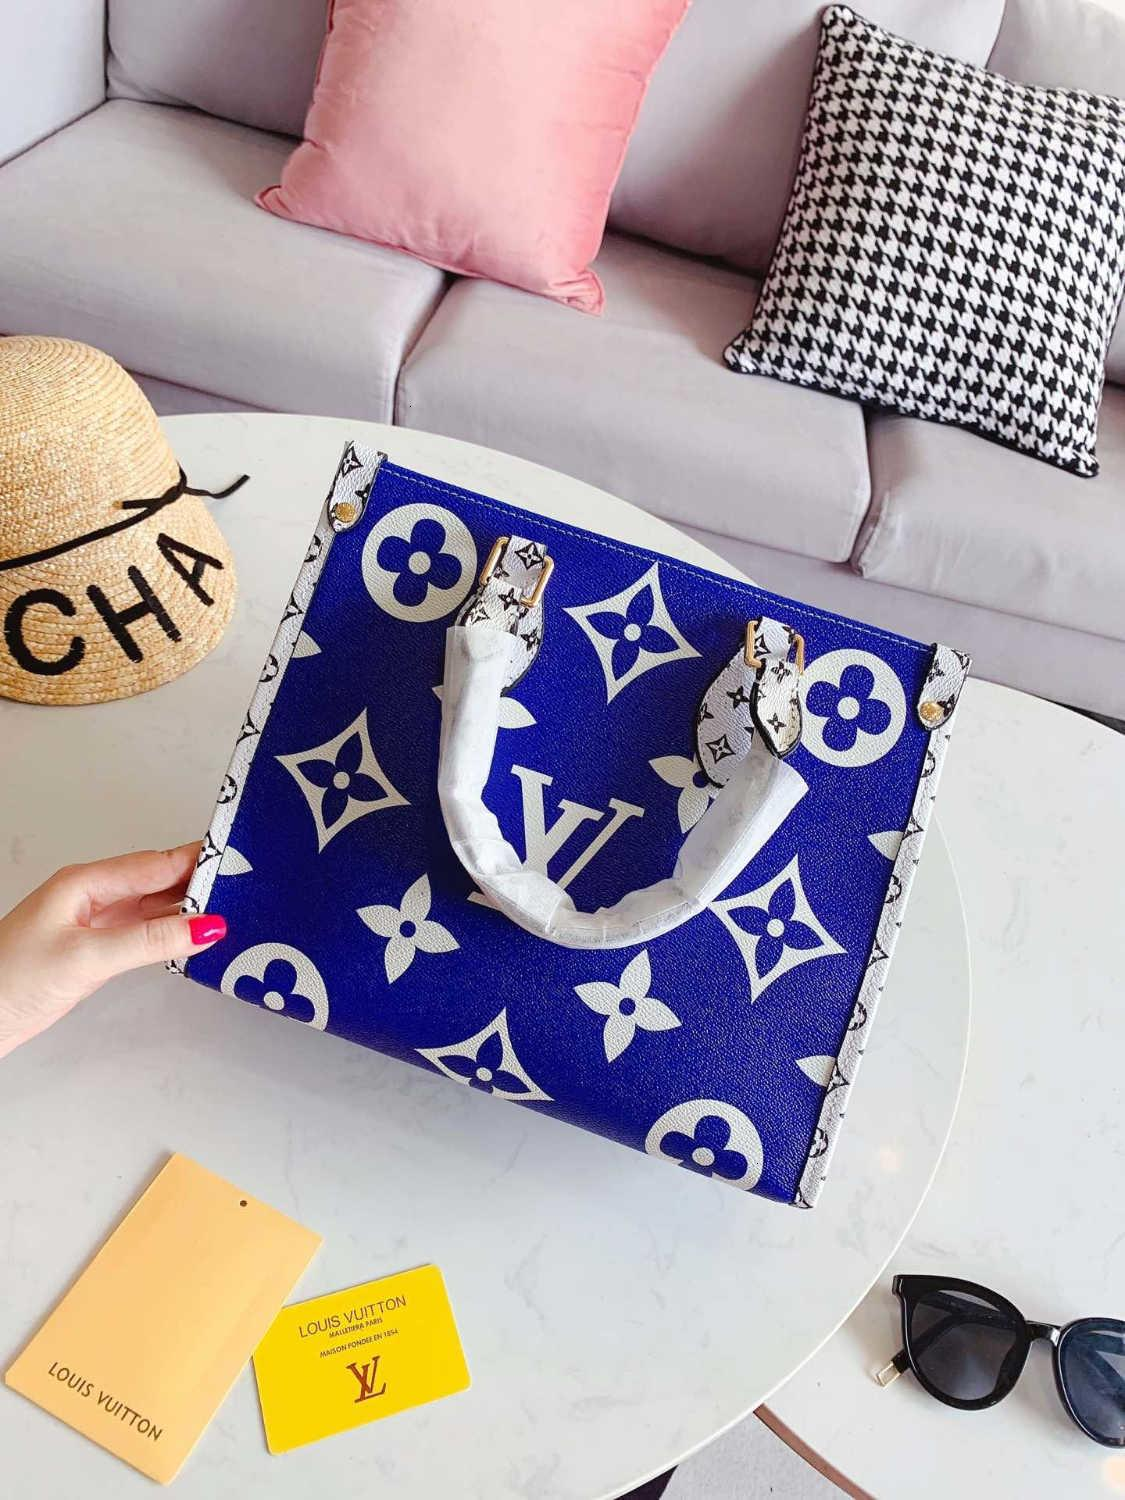 08173 2019 hot designer handbags brand bags shoulder tote new clutch leather purses ladies women wallet